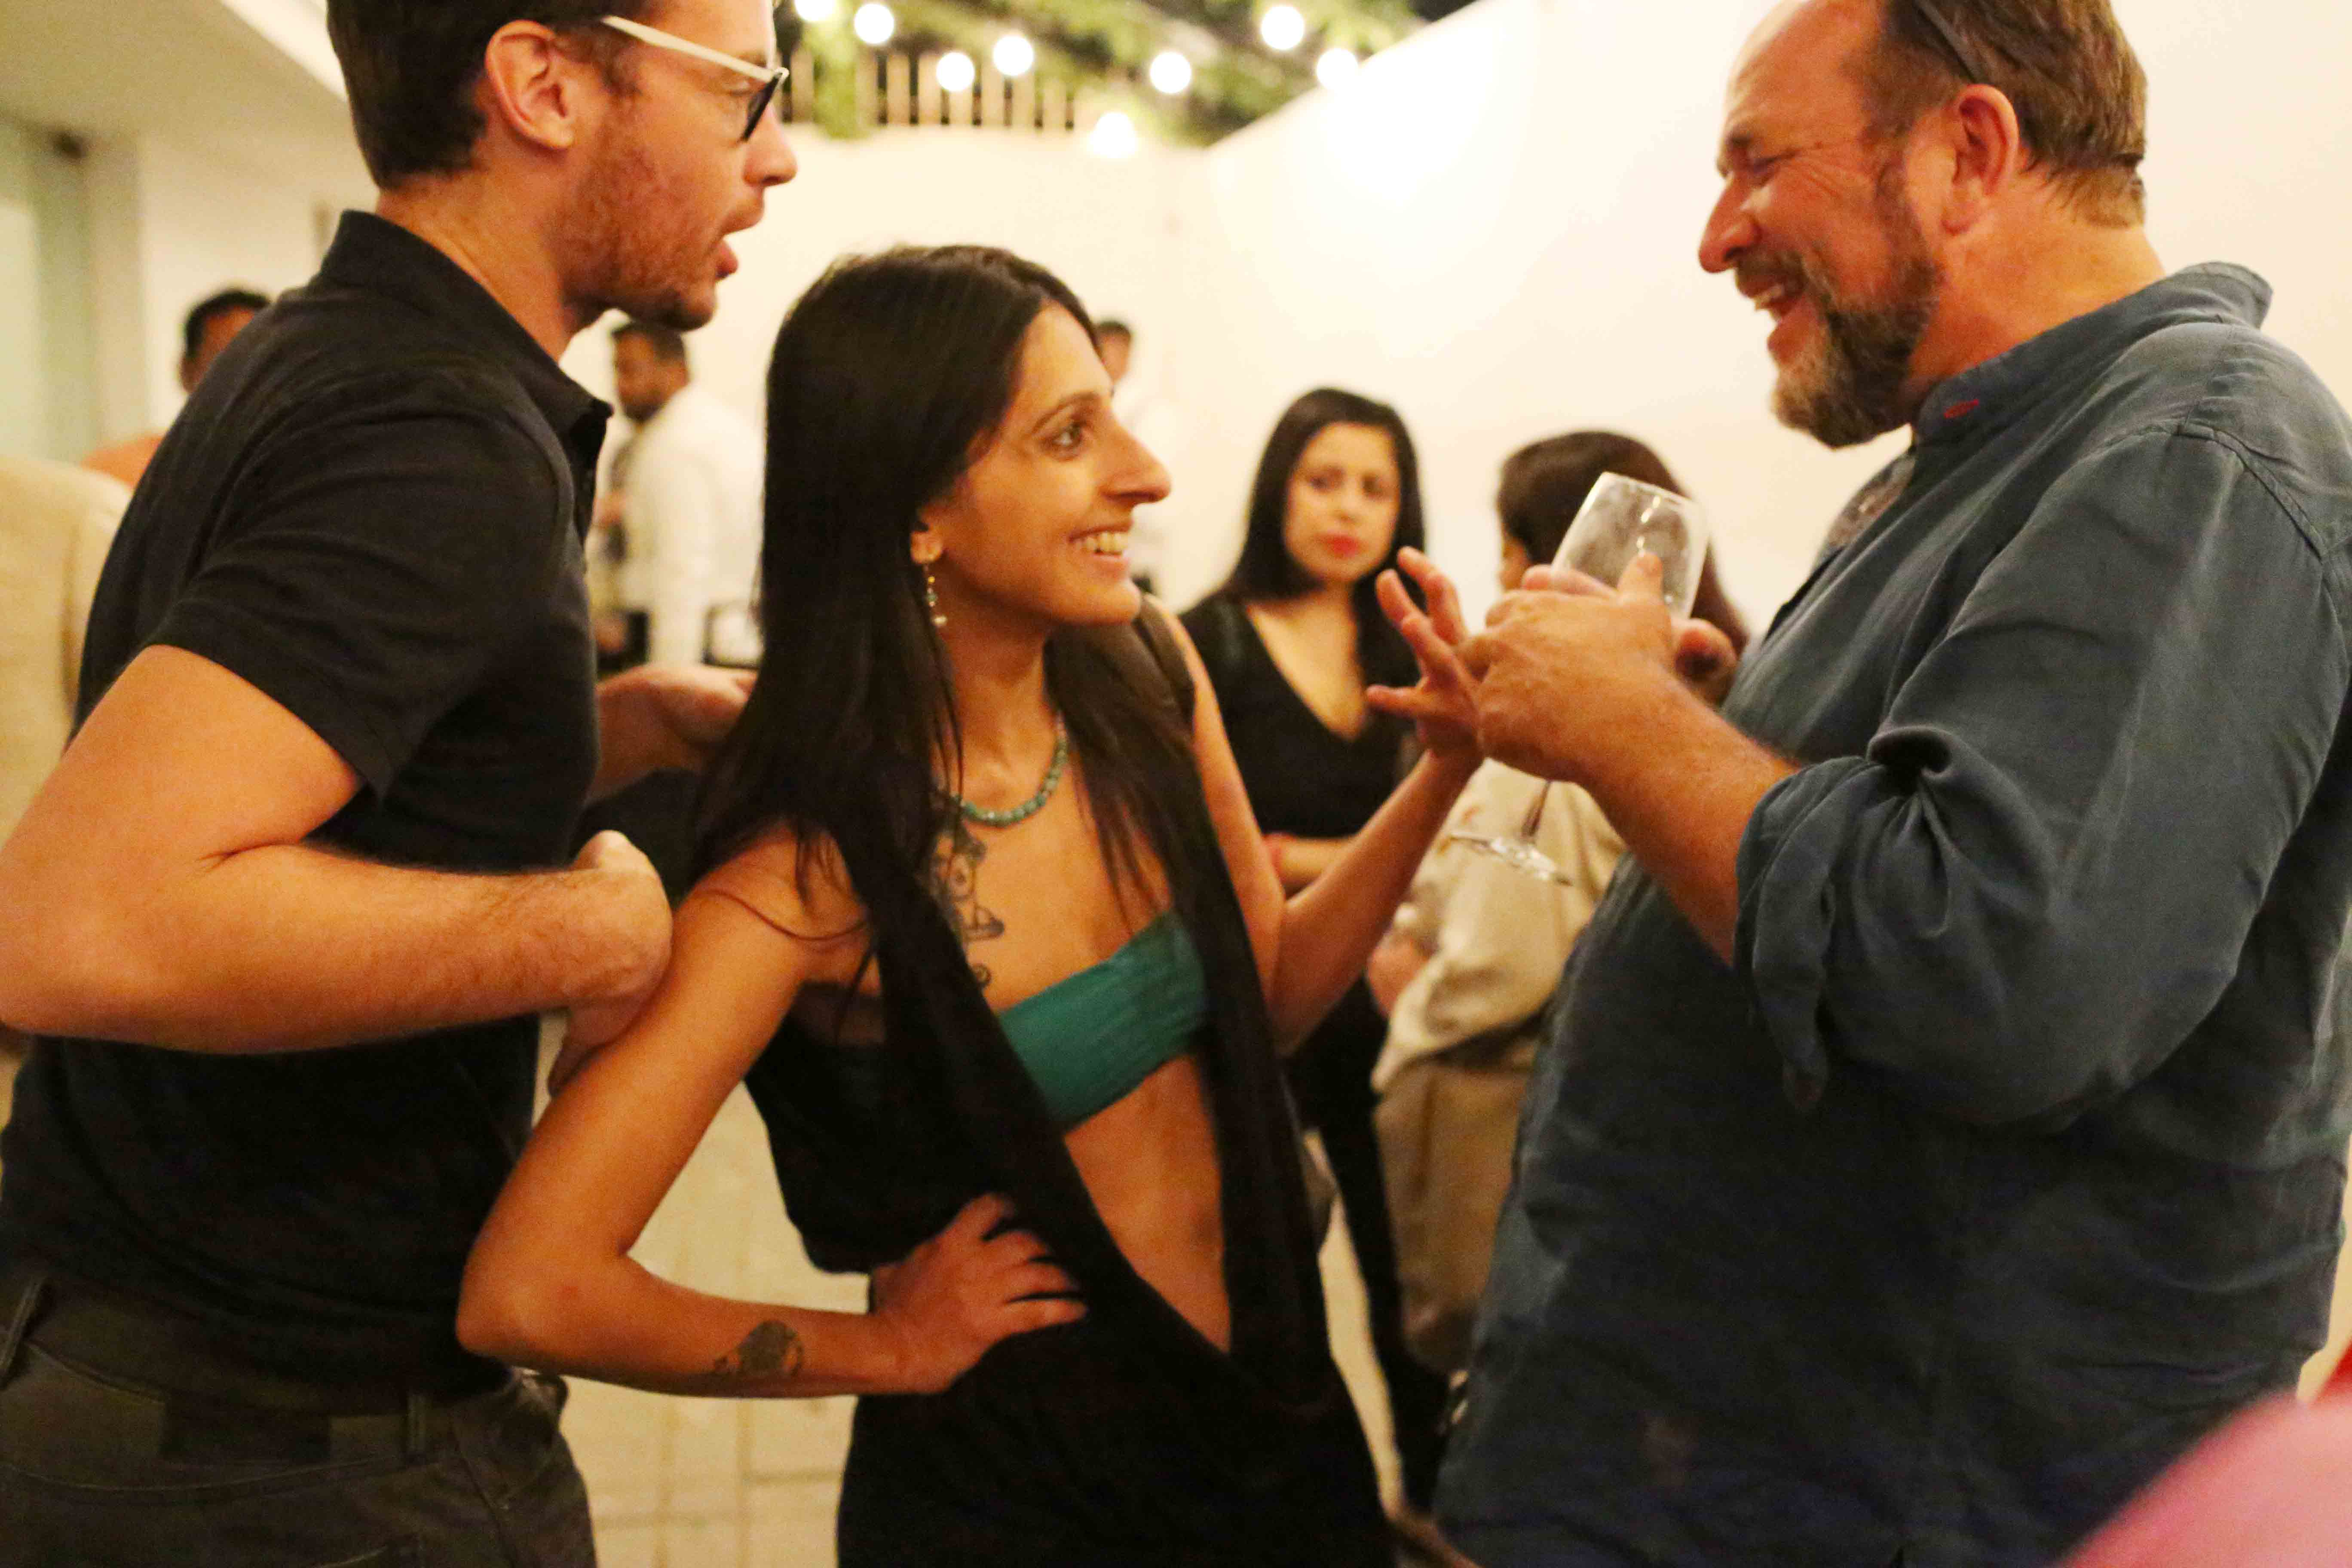 Netherfield Ball – Explosive Clash Averted at William Dalrymple's Opening Bash, Vadhera Art Gallery, Defence Colony